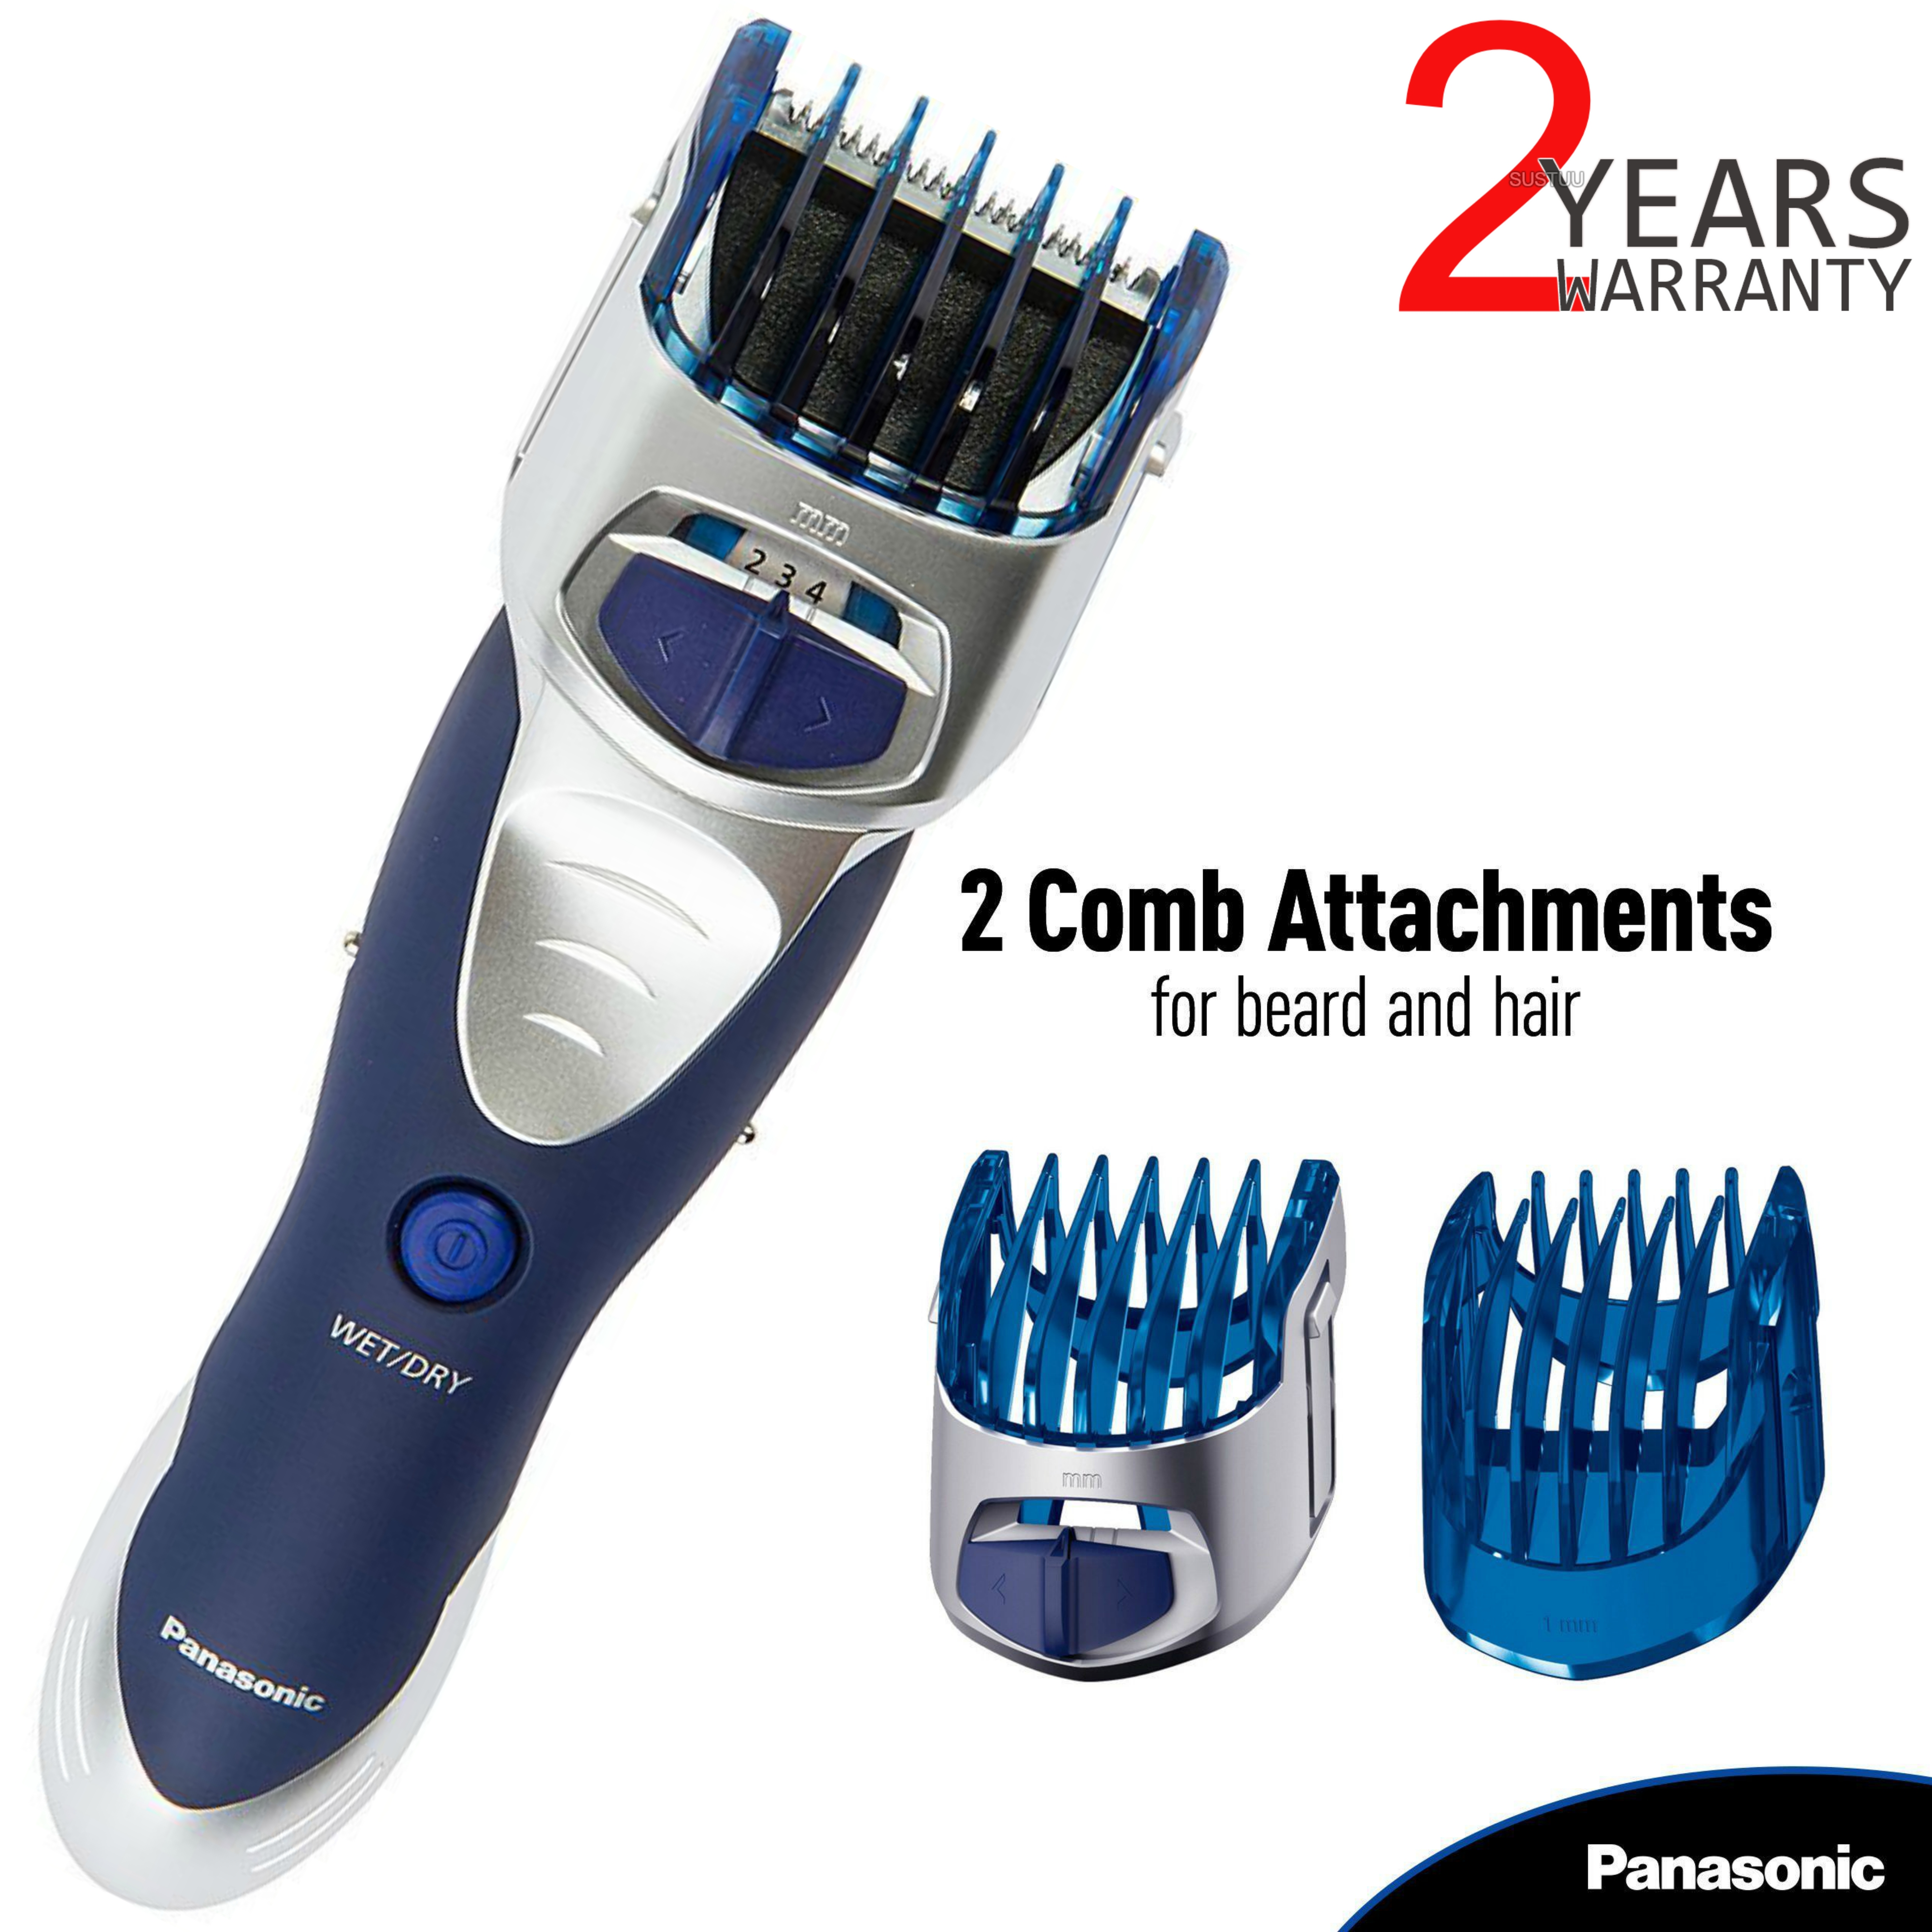 Panasonic Wet Dry Men's Hair-Body Rechargeable Trimmer Clipper | Cordless | ERGS60S